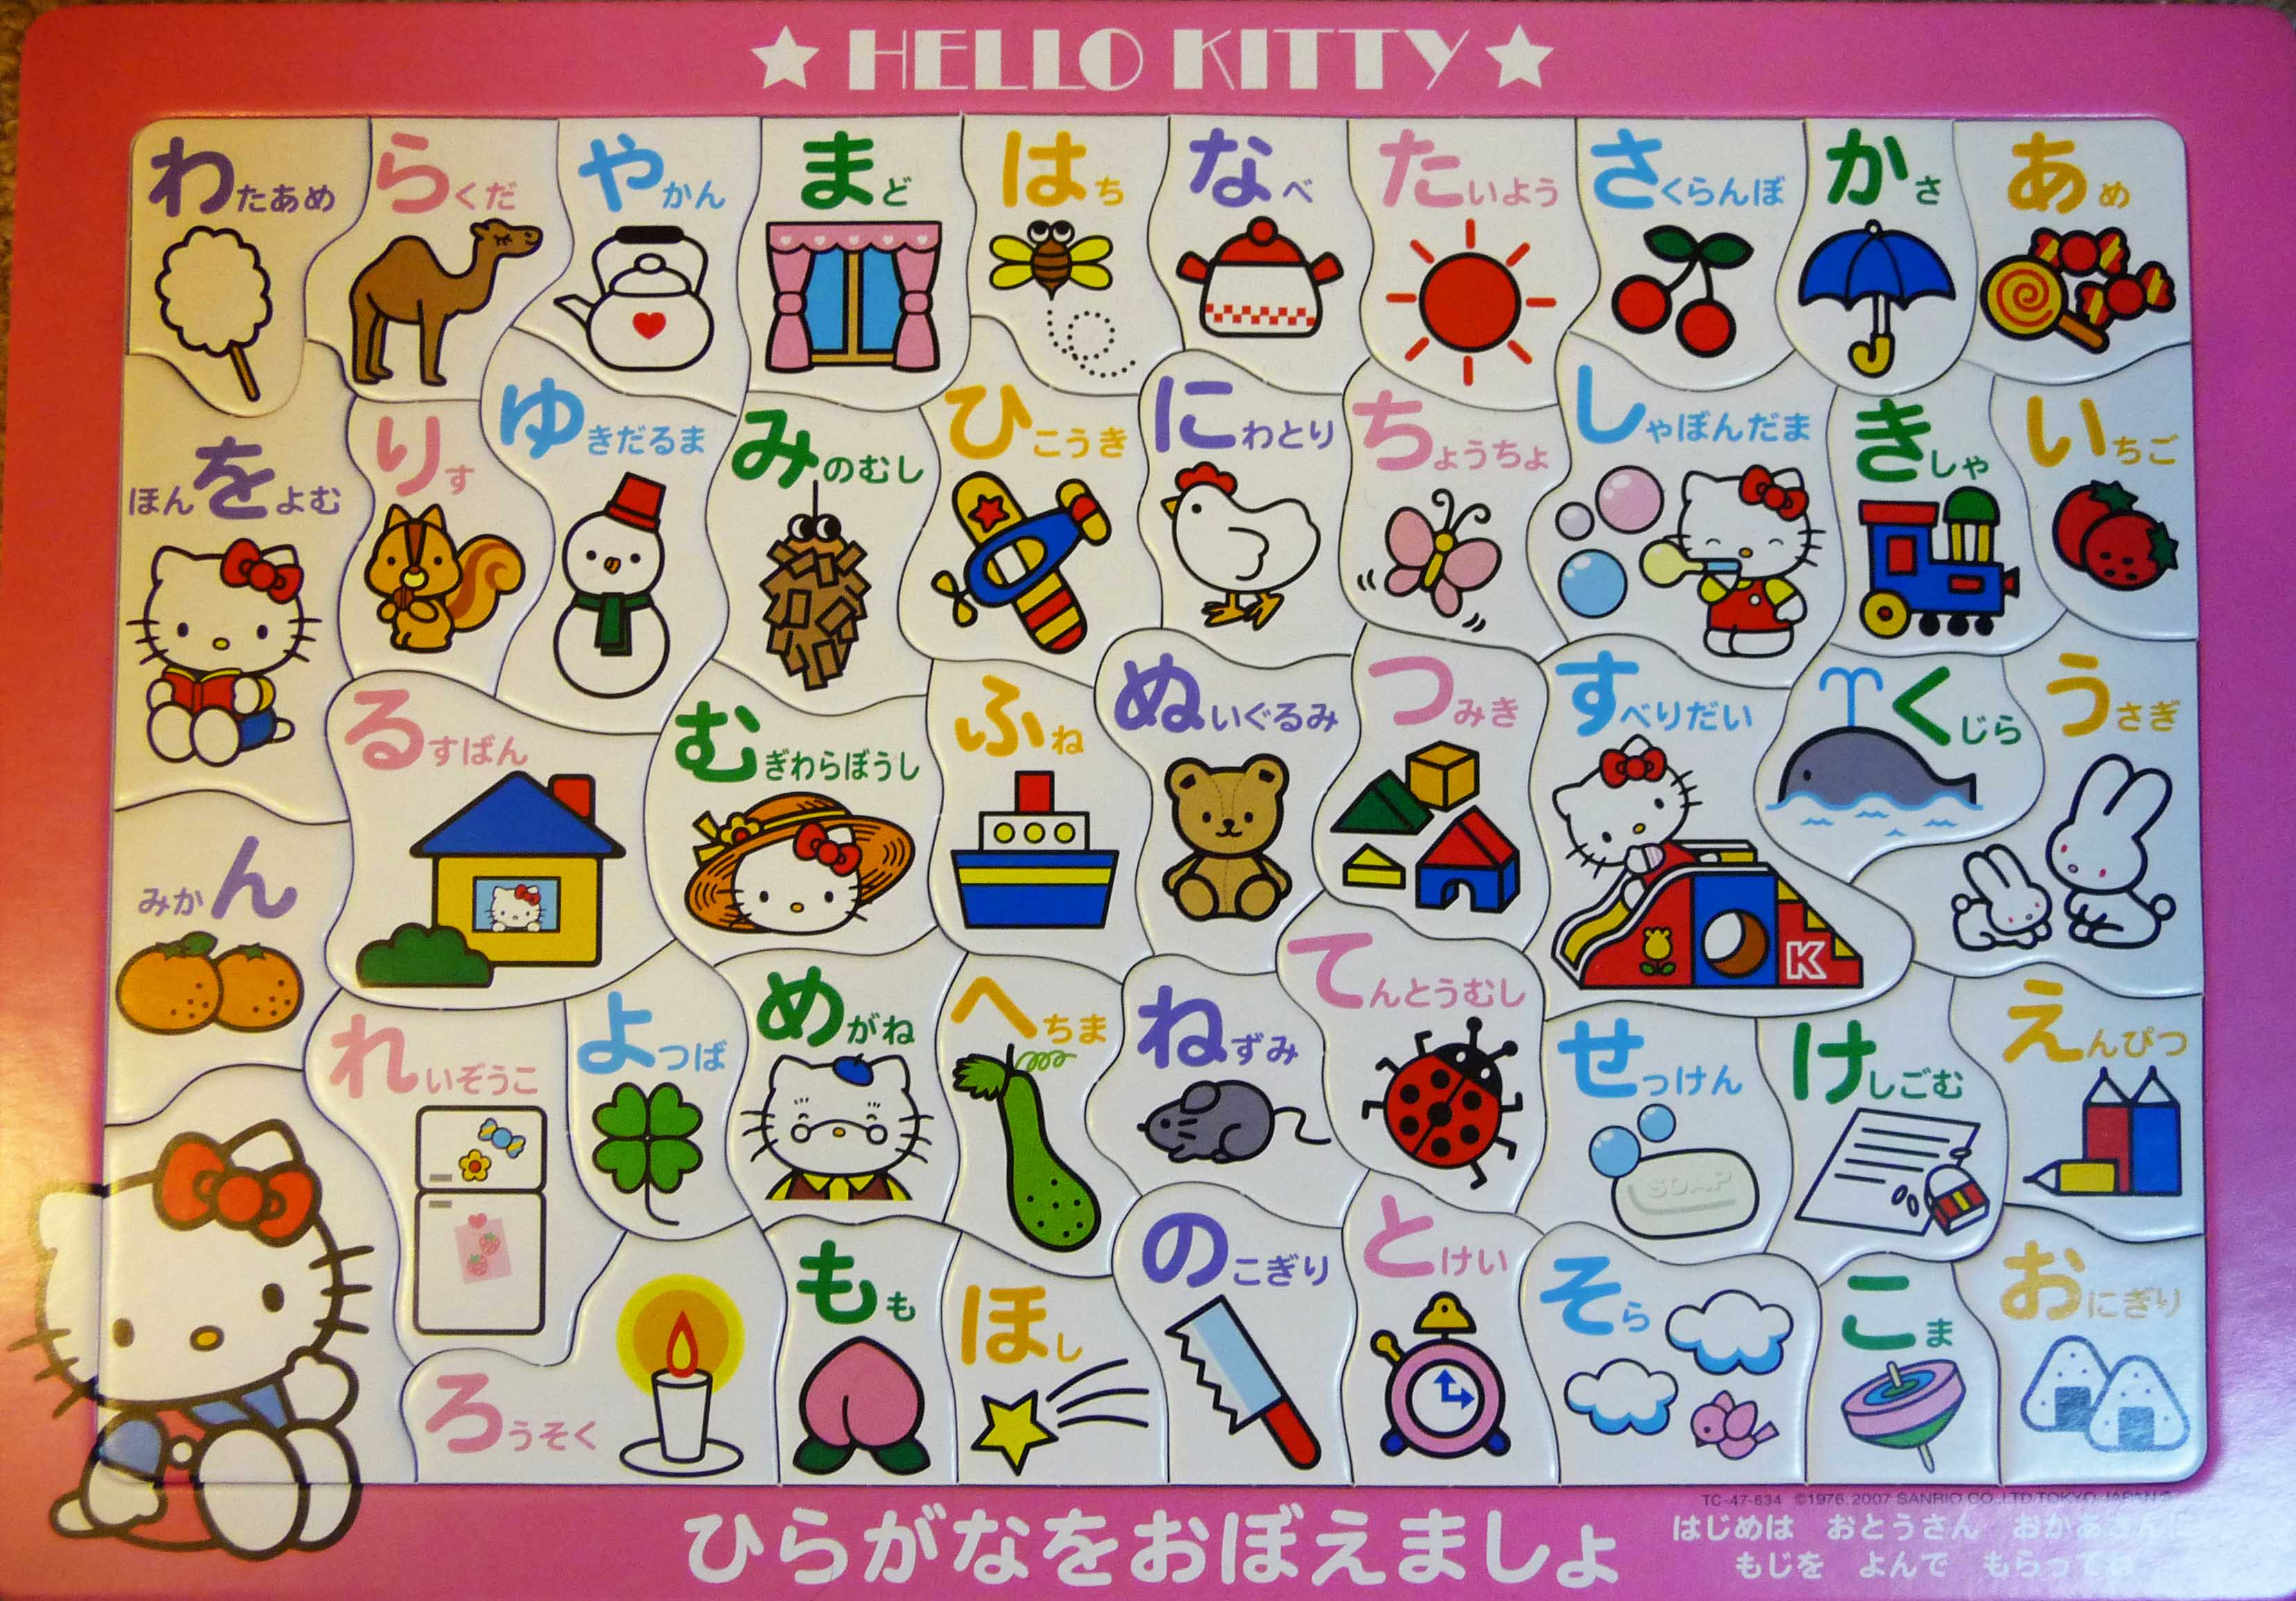 how to write hello in hiragana